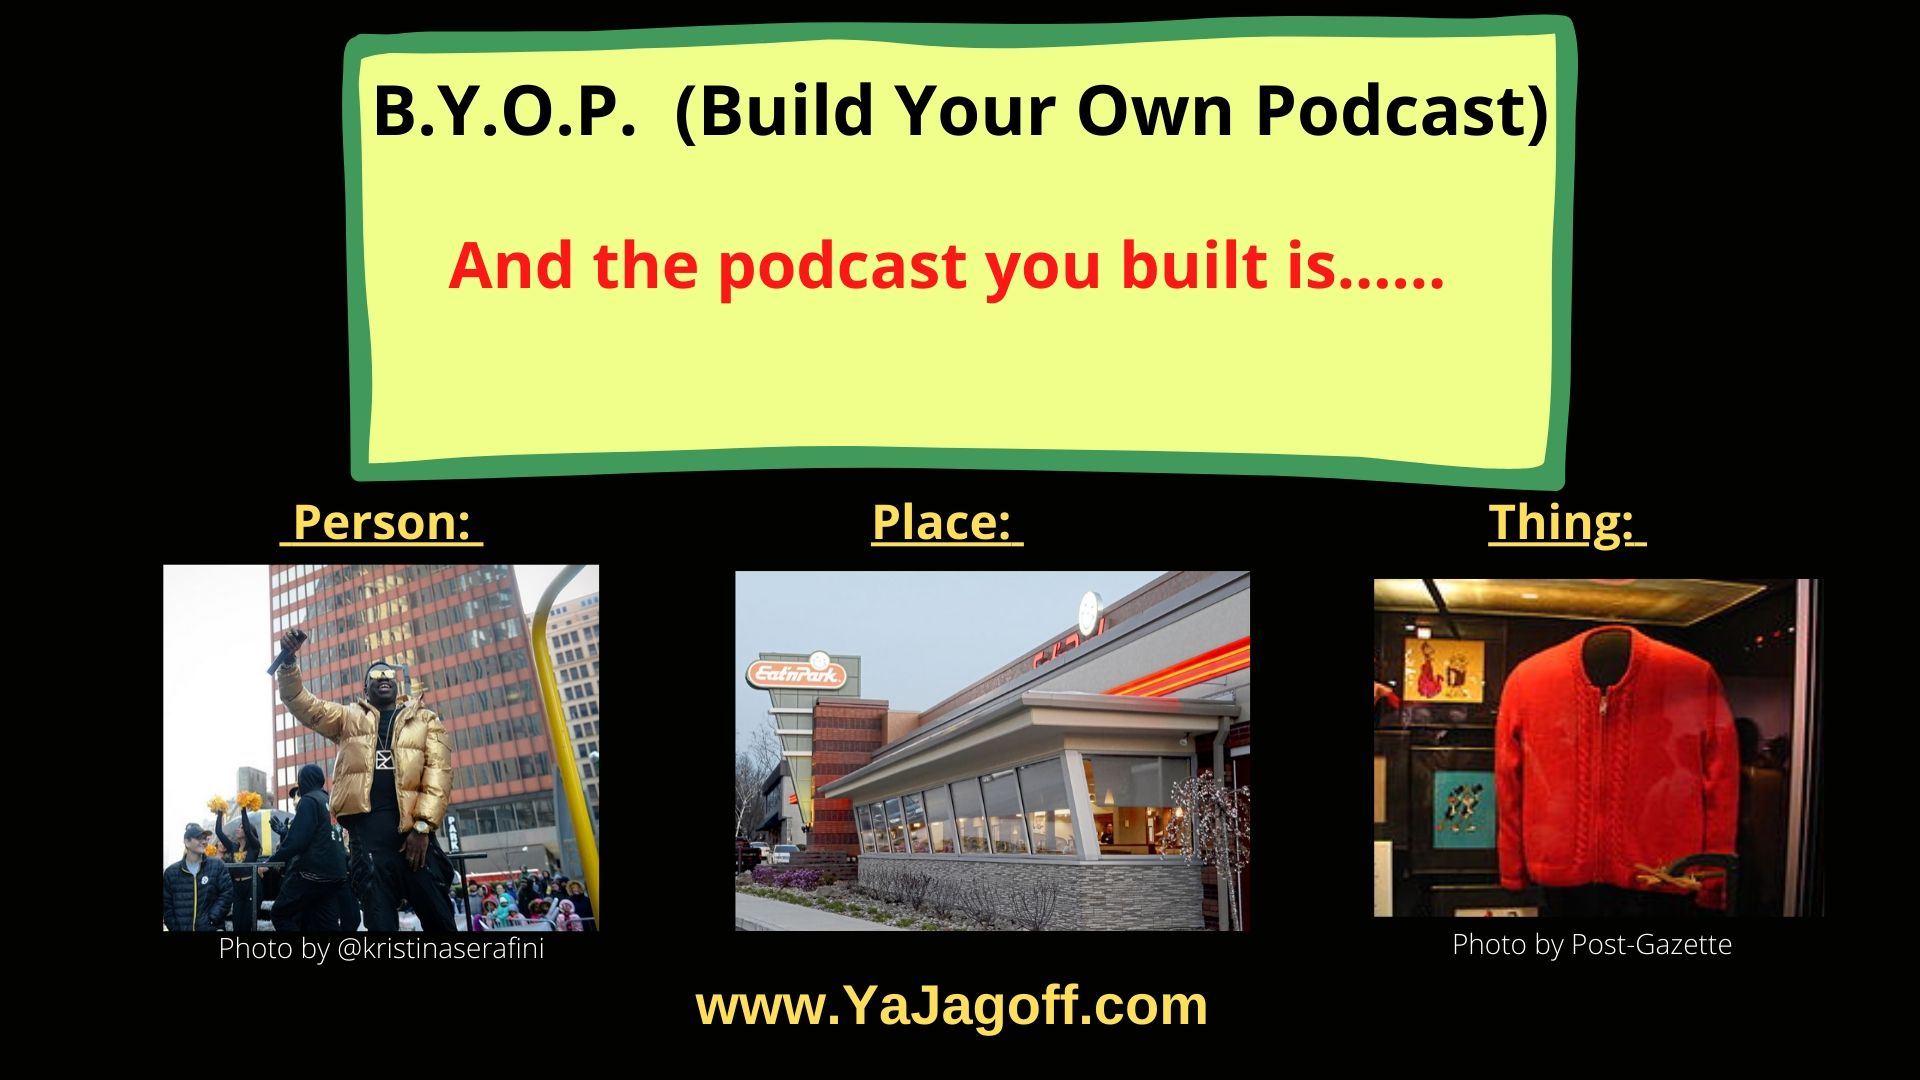 YaJagoff Podcast Build Your Own Podcast Wnners